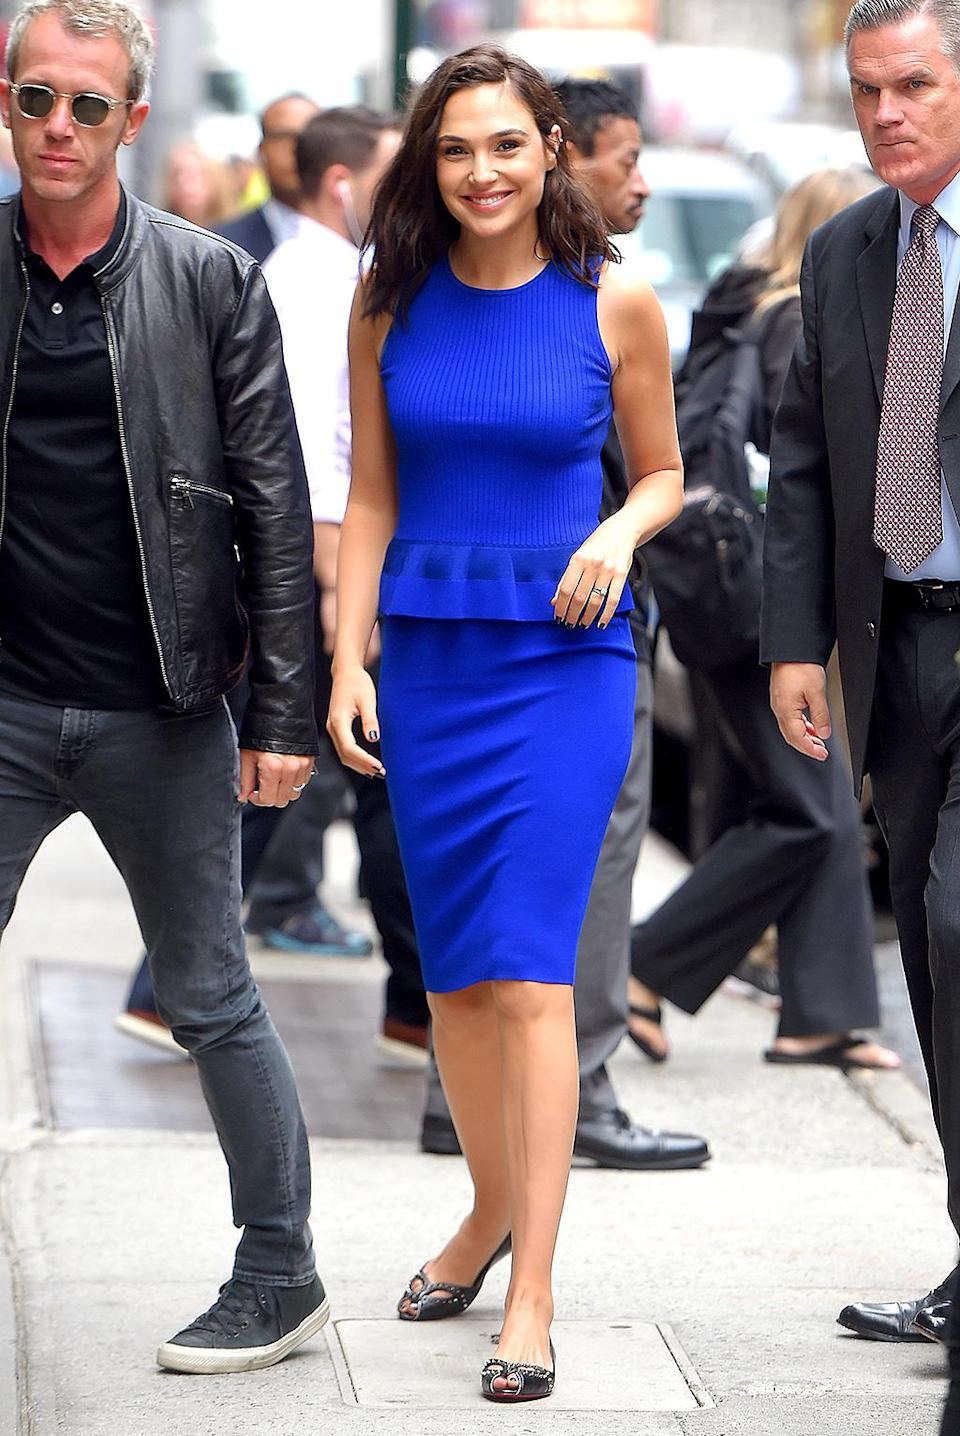 <p>Good morning, Gal! The actress (pictured with her husband of eight years, Yaron Versano) wore a blue peplum top and skirt from Diane von Furstenberg for an appearance on <i>Good Morning America</i>. Of course, she wore flats. (Photo by Josiah Kamau/BuzzFoto via Getty Images) </p>